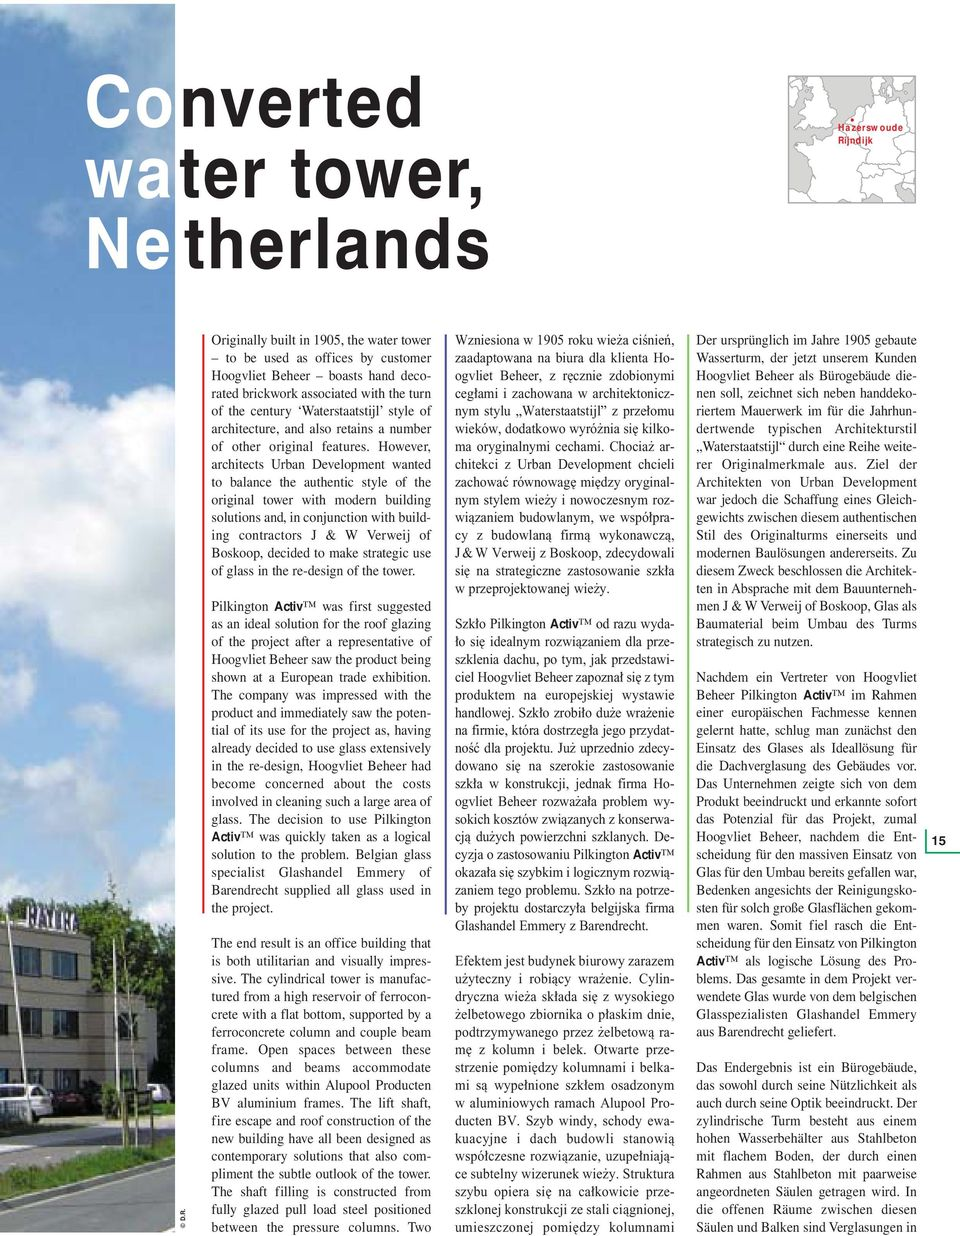 However, architects Urban Development wanted to balance the authentic style of the original tower with modern building solutions and, in conjunction with building contractors J & W Verweij of